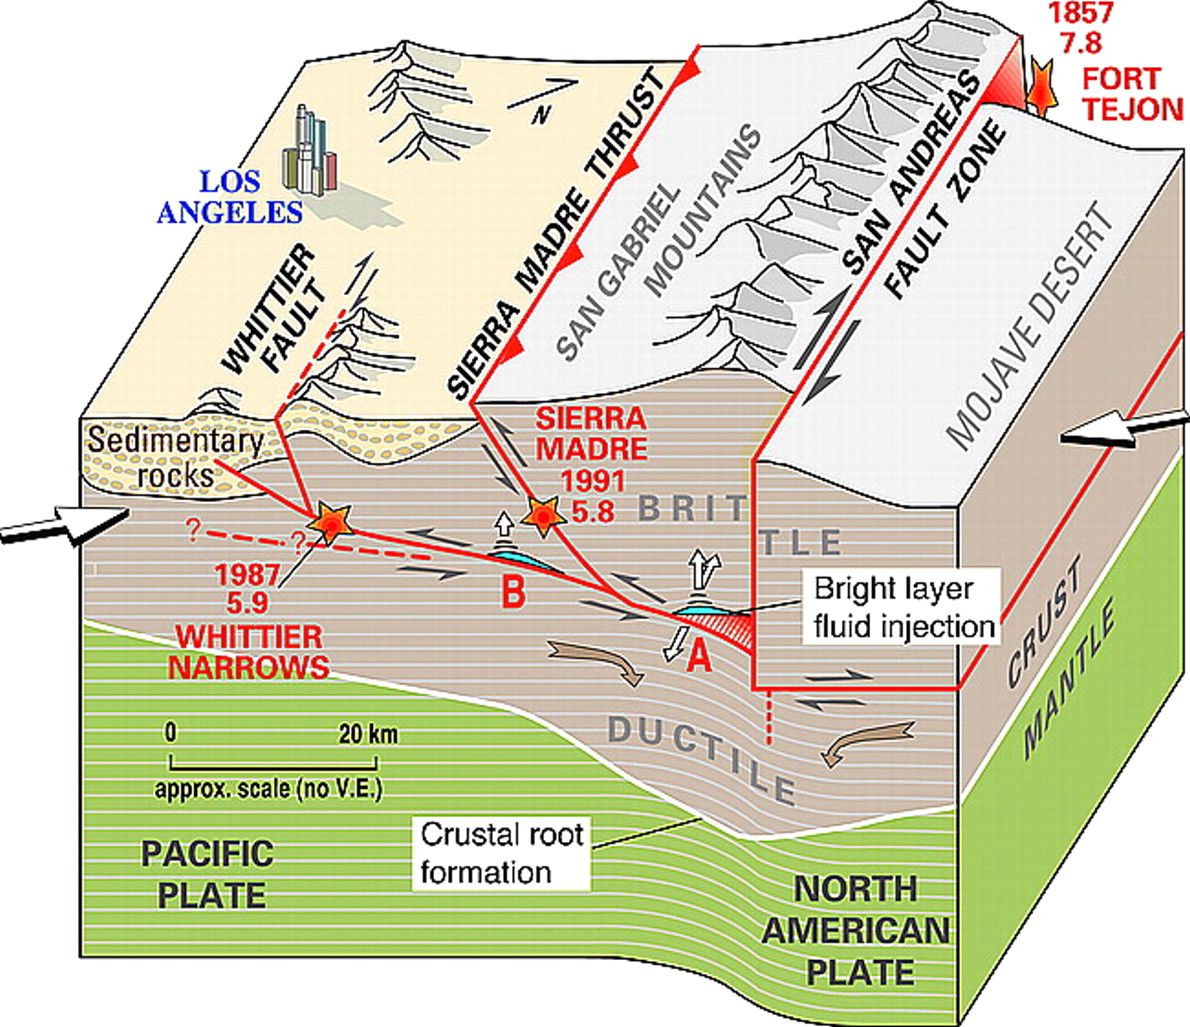 medium resolution of physical geology or landforms earthquake fault san andreas fault stem science earth science